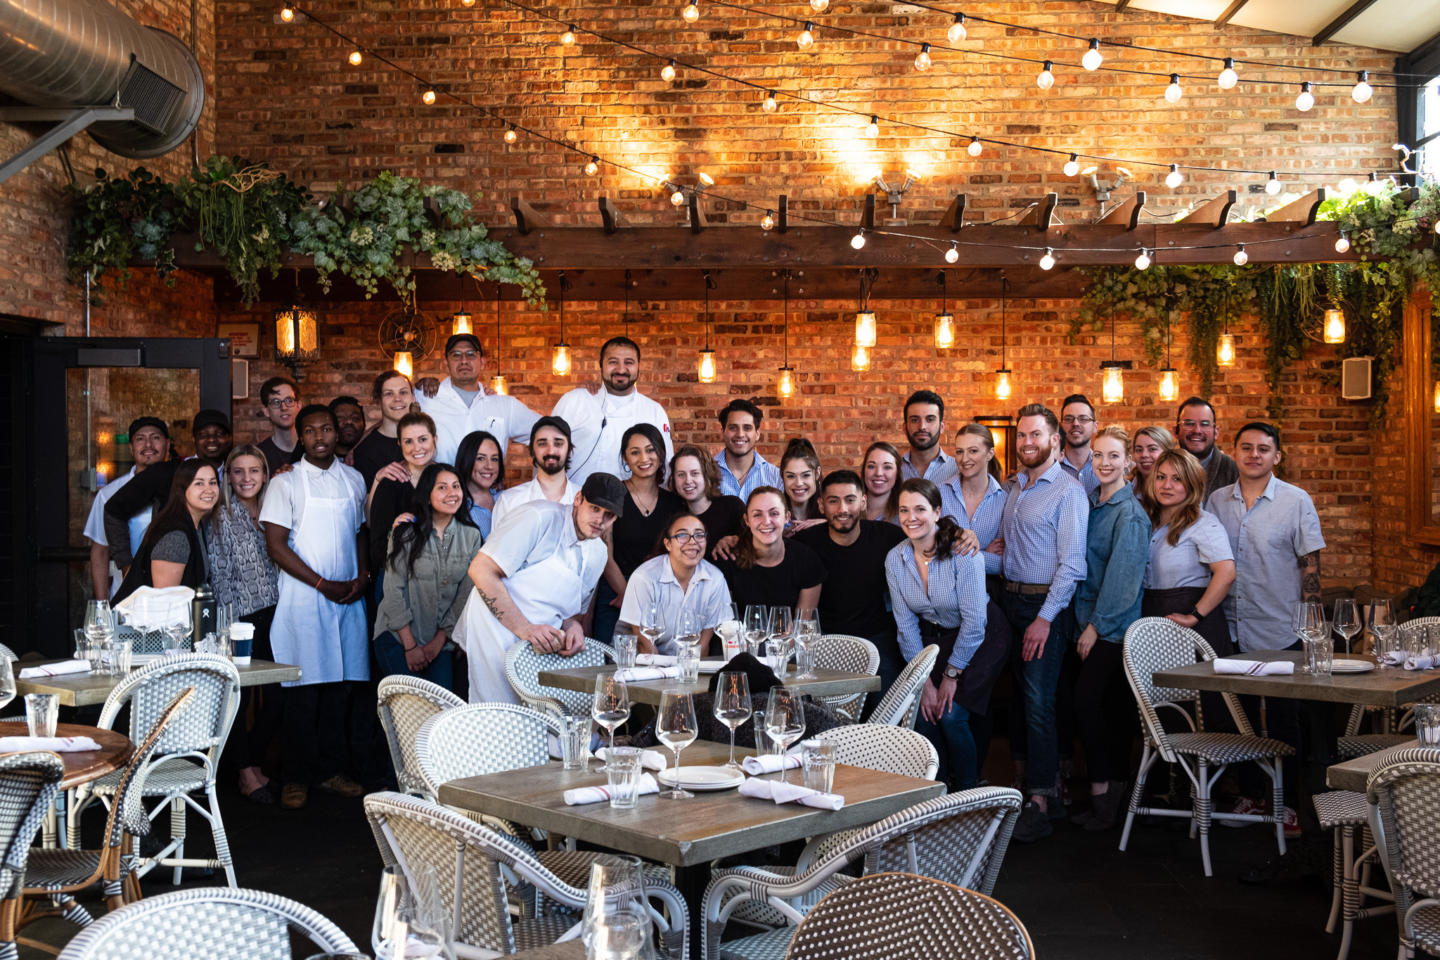 Summer House and Stelal Barra Chicago staff